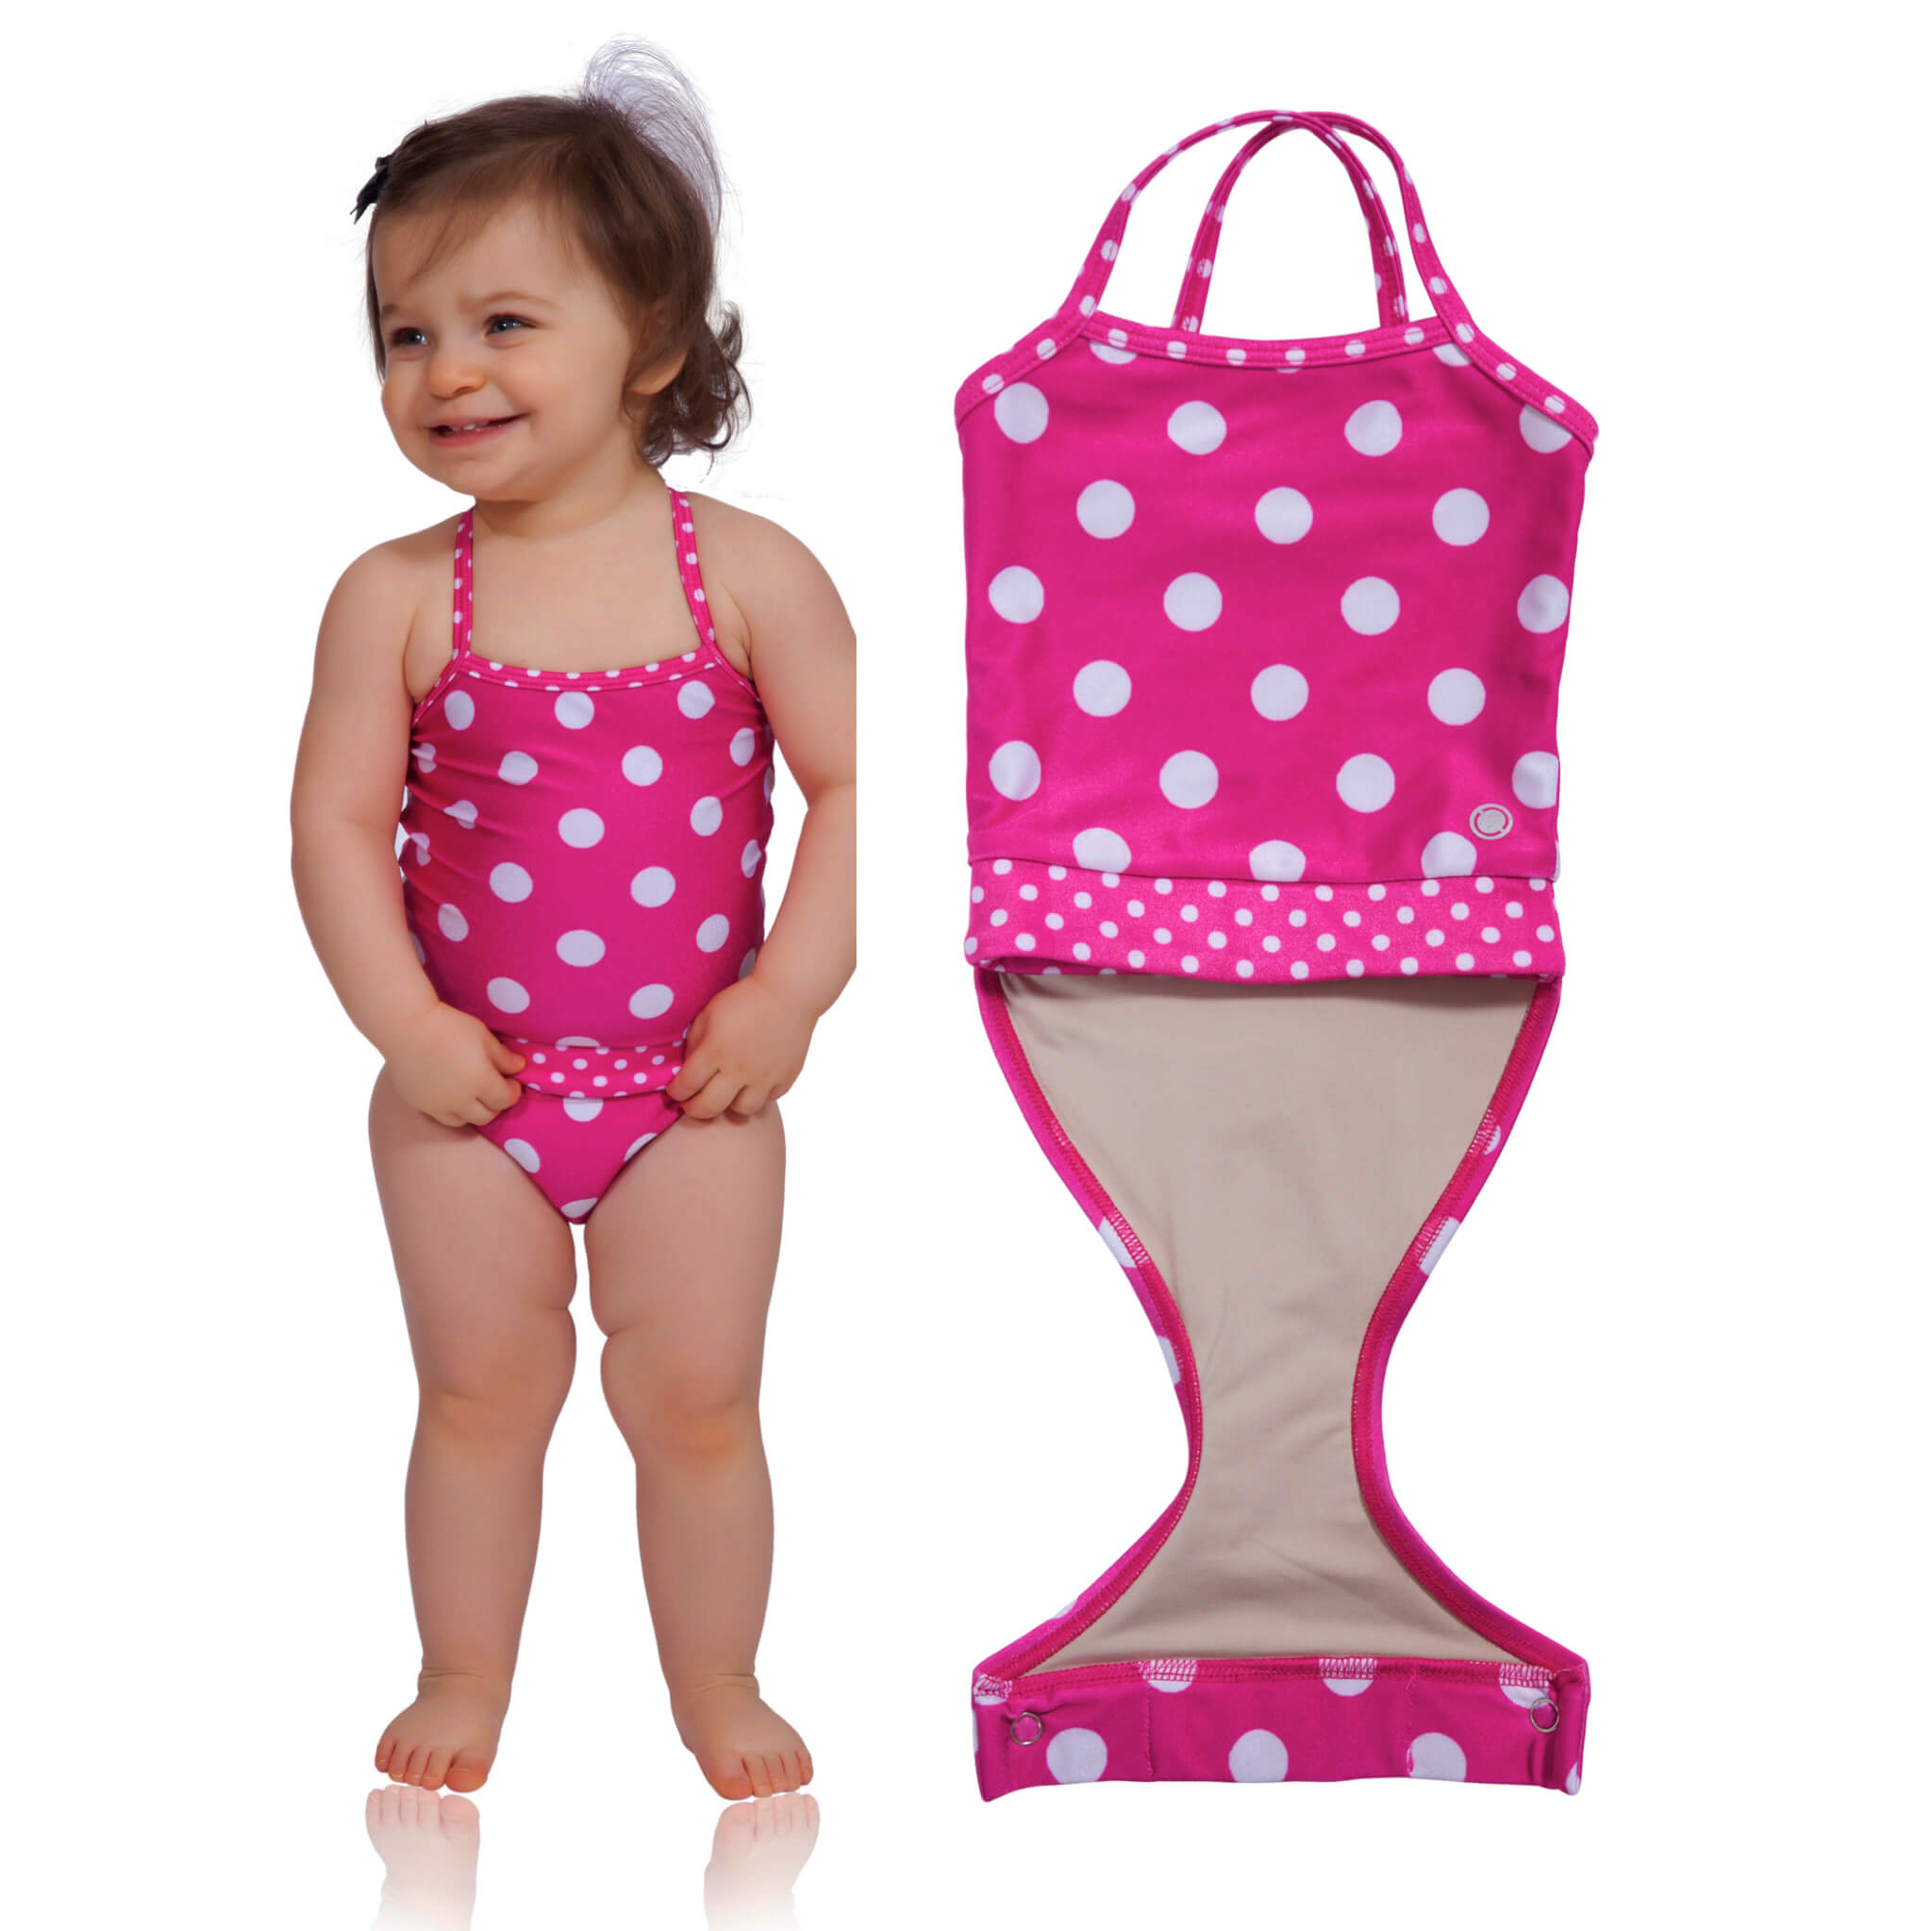 ... Watermelon Polka Dot baby girl swimsuit by FASTEN. Features patented  design that opens at the ... a15ed70251d